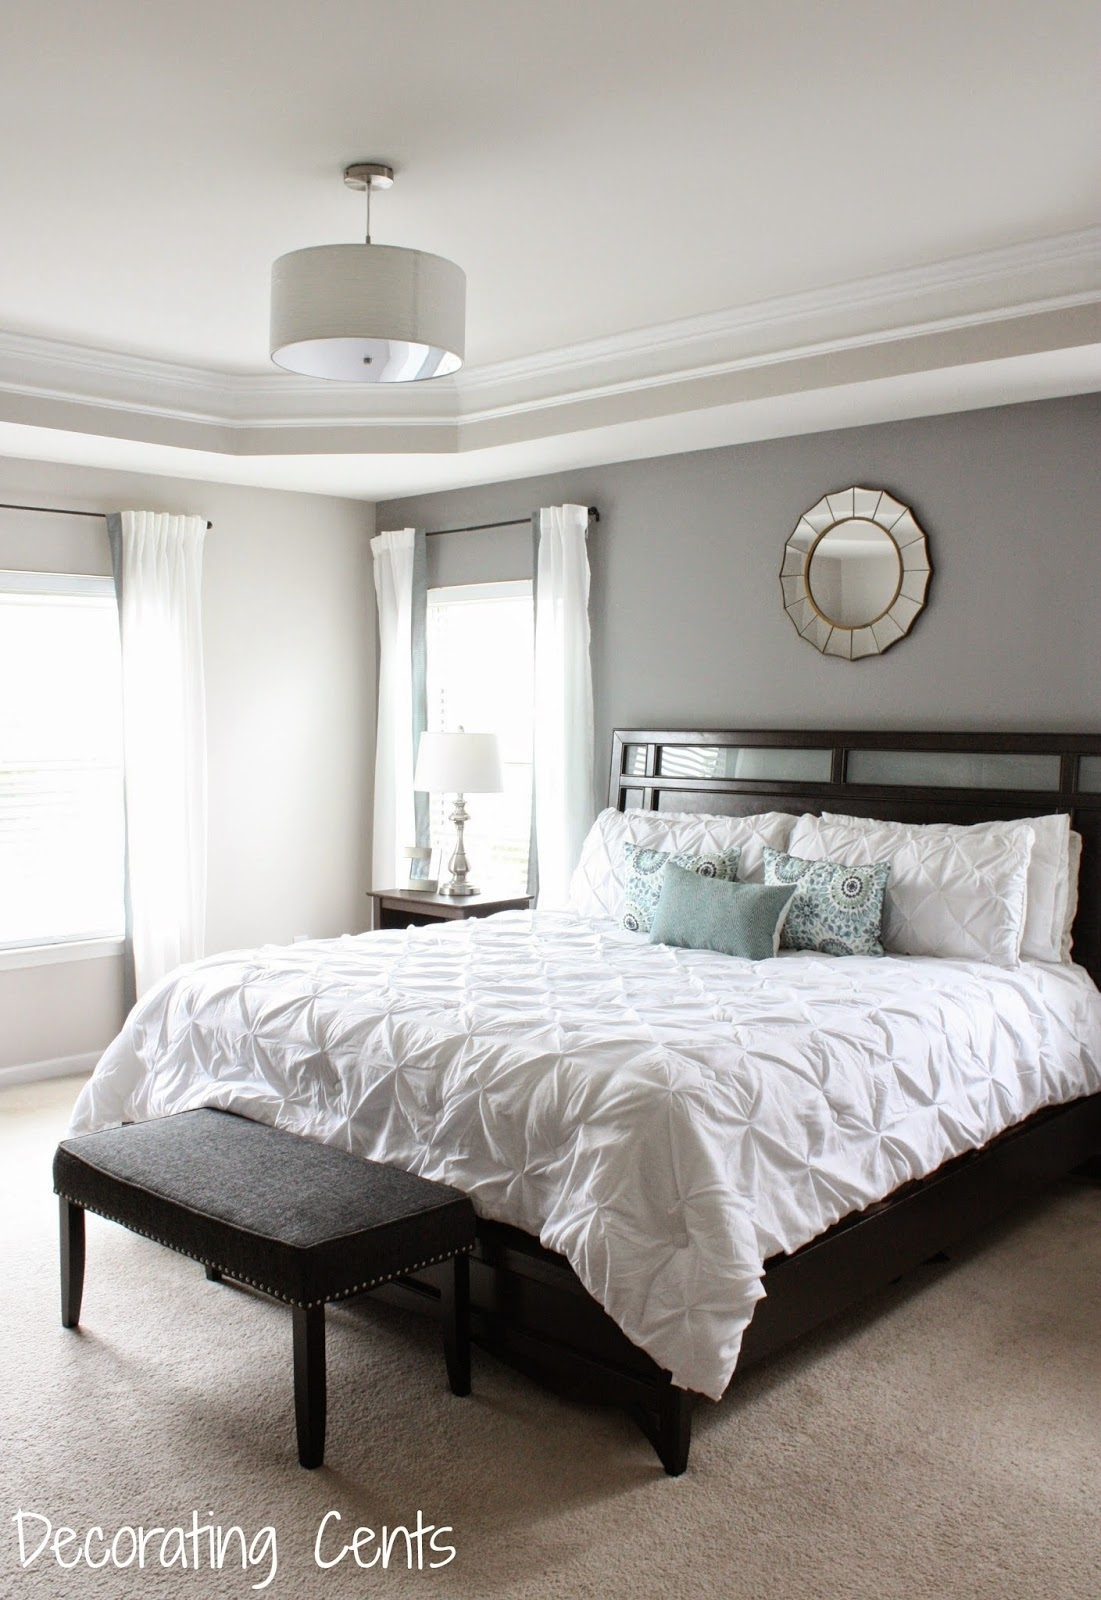 Decorating Cents: Gray Accent Wall Throughout Most Recent Wall Accents Behind Bed (Gallery 7 of 15)